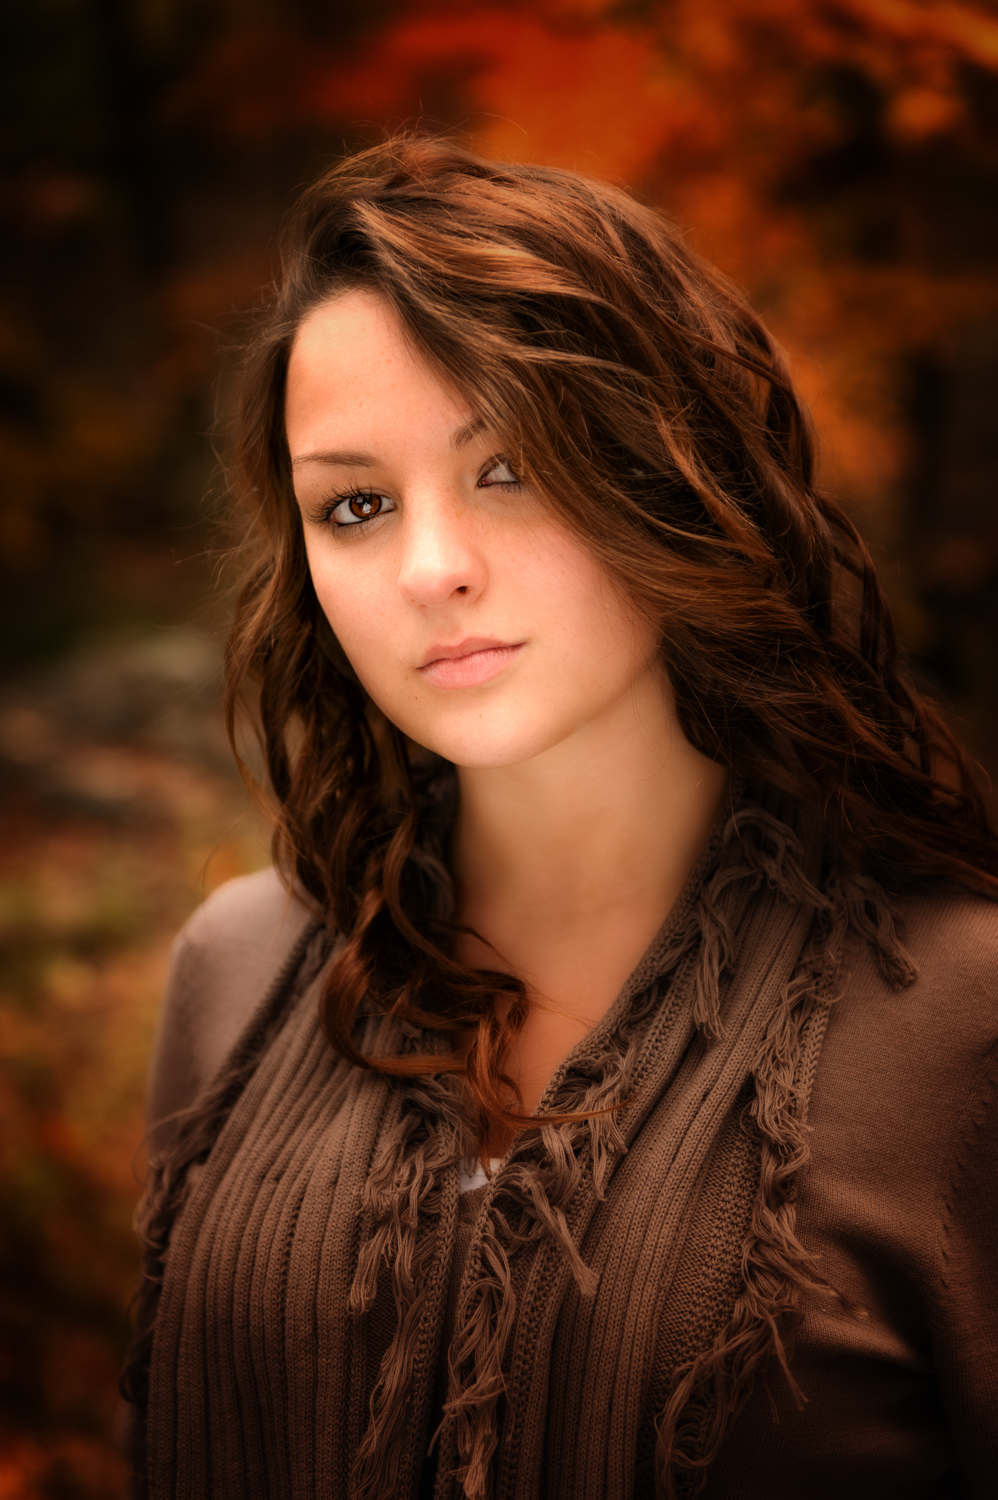 Darren Elias Photography - Sara-19.jpg